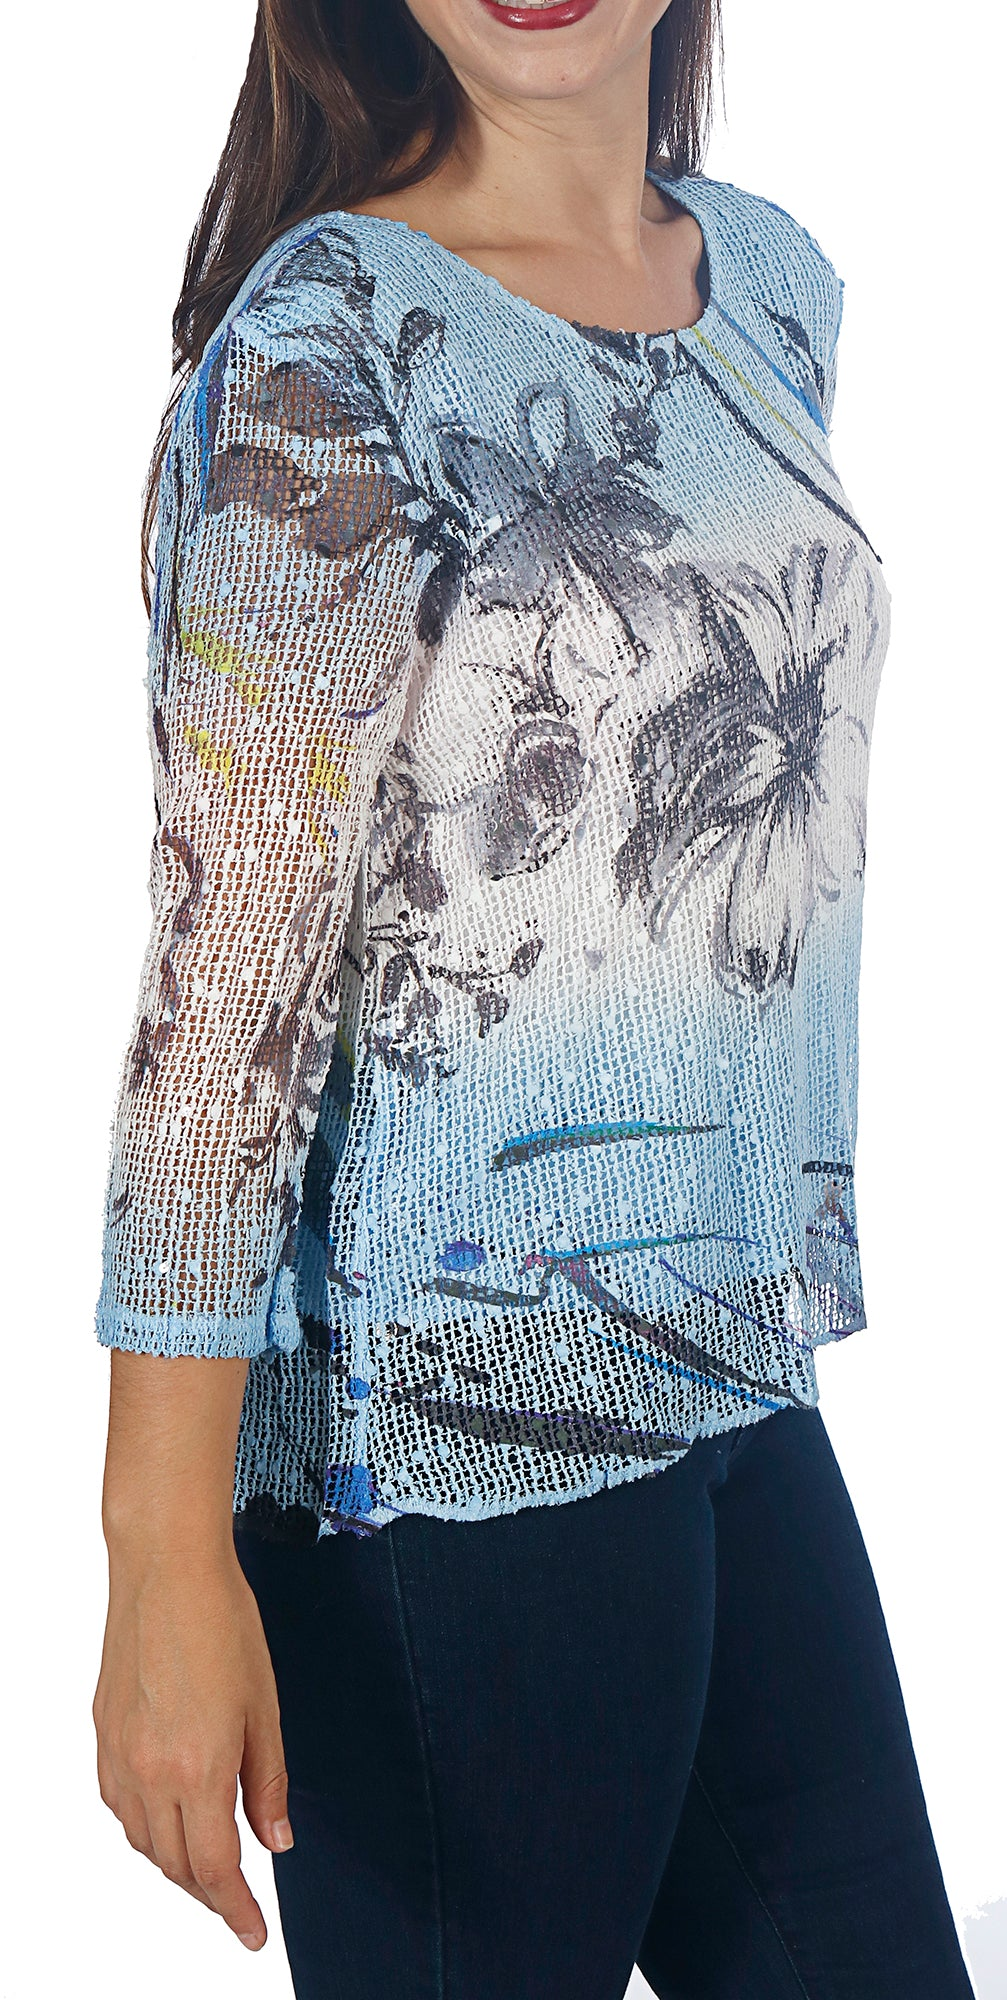 Impulse California Women's Two Tone Print Mesh